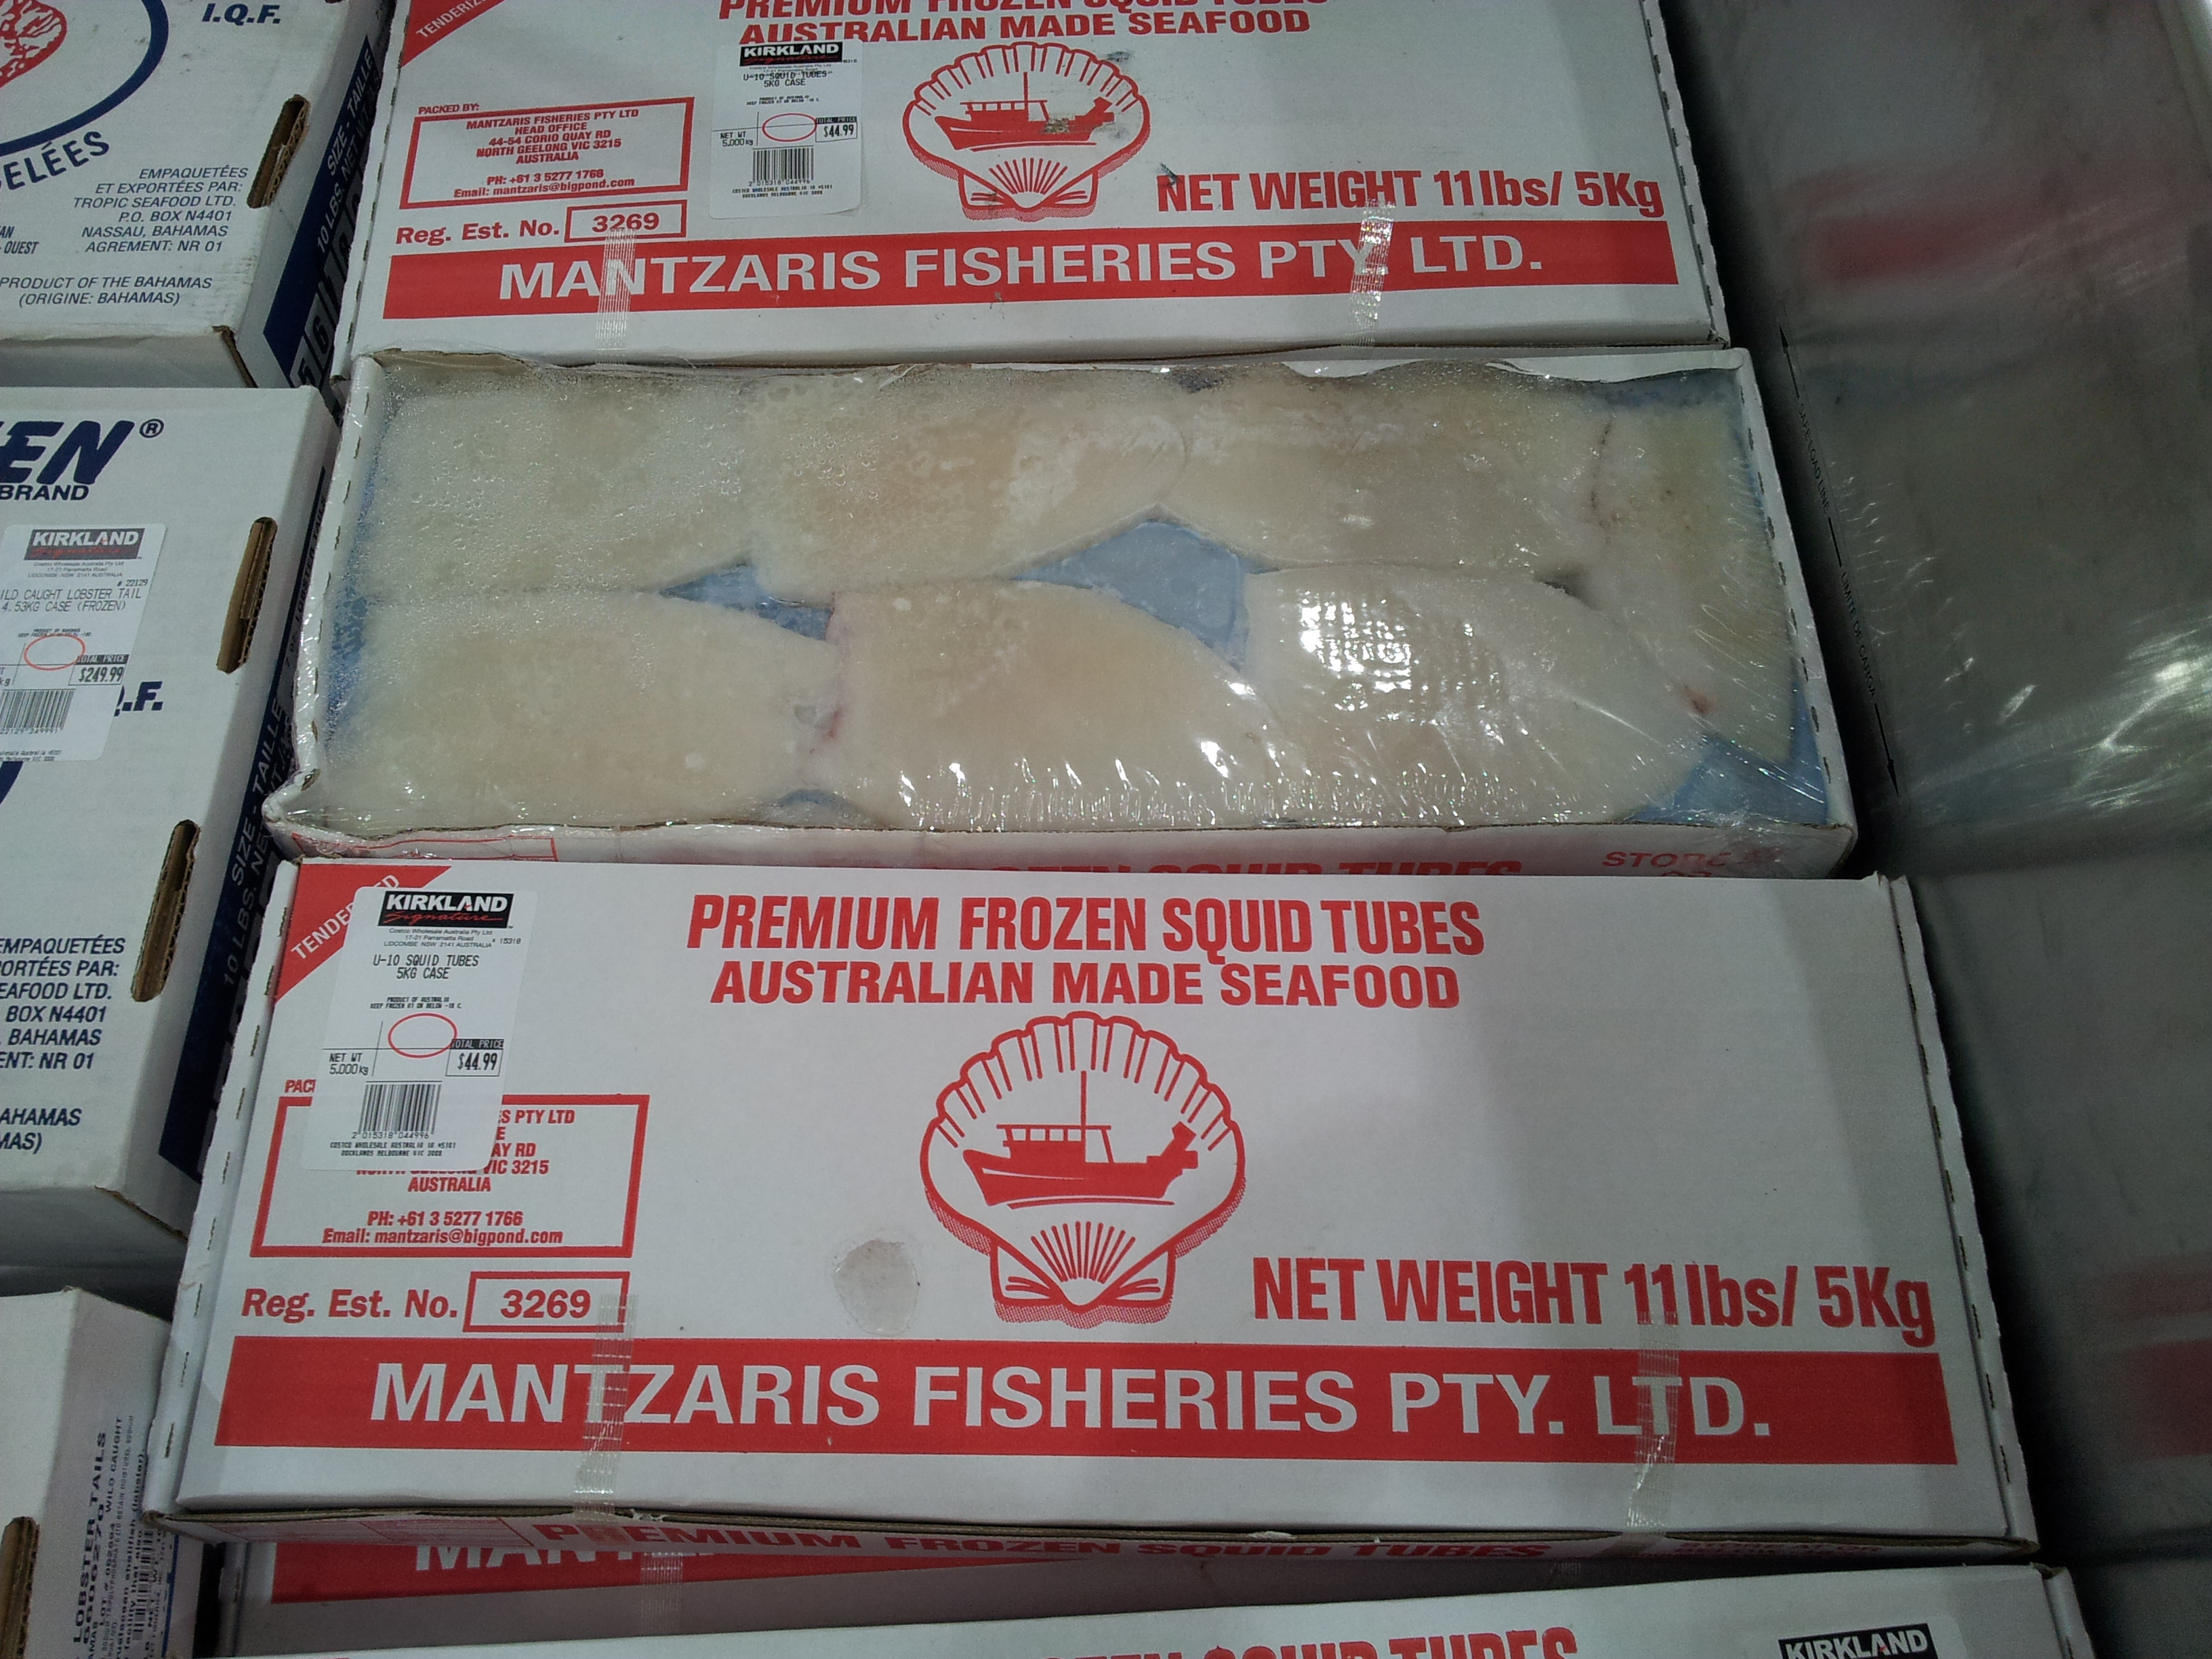 Seafood at Costco Australia | Loaded Trolley